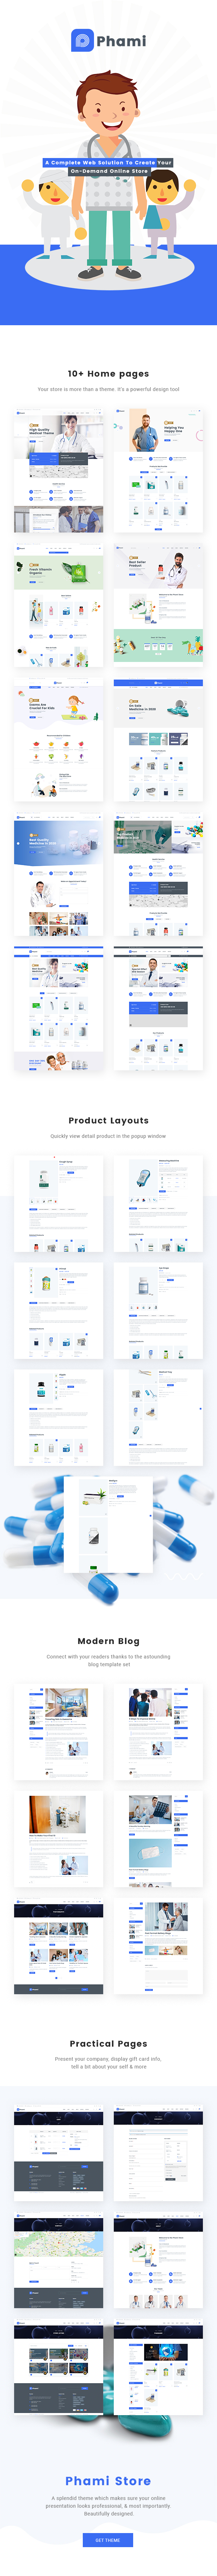 Phami – Medical & Health WooCommerce Theme - 1